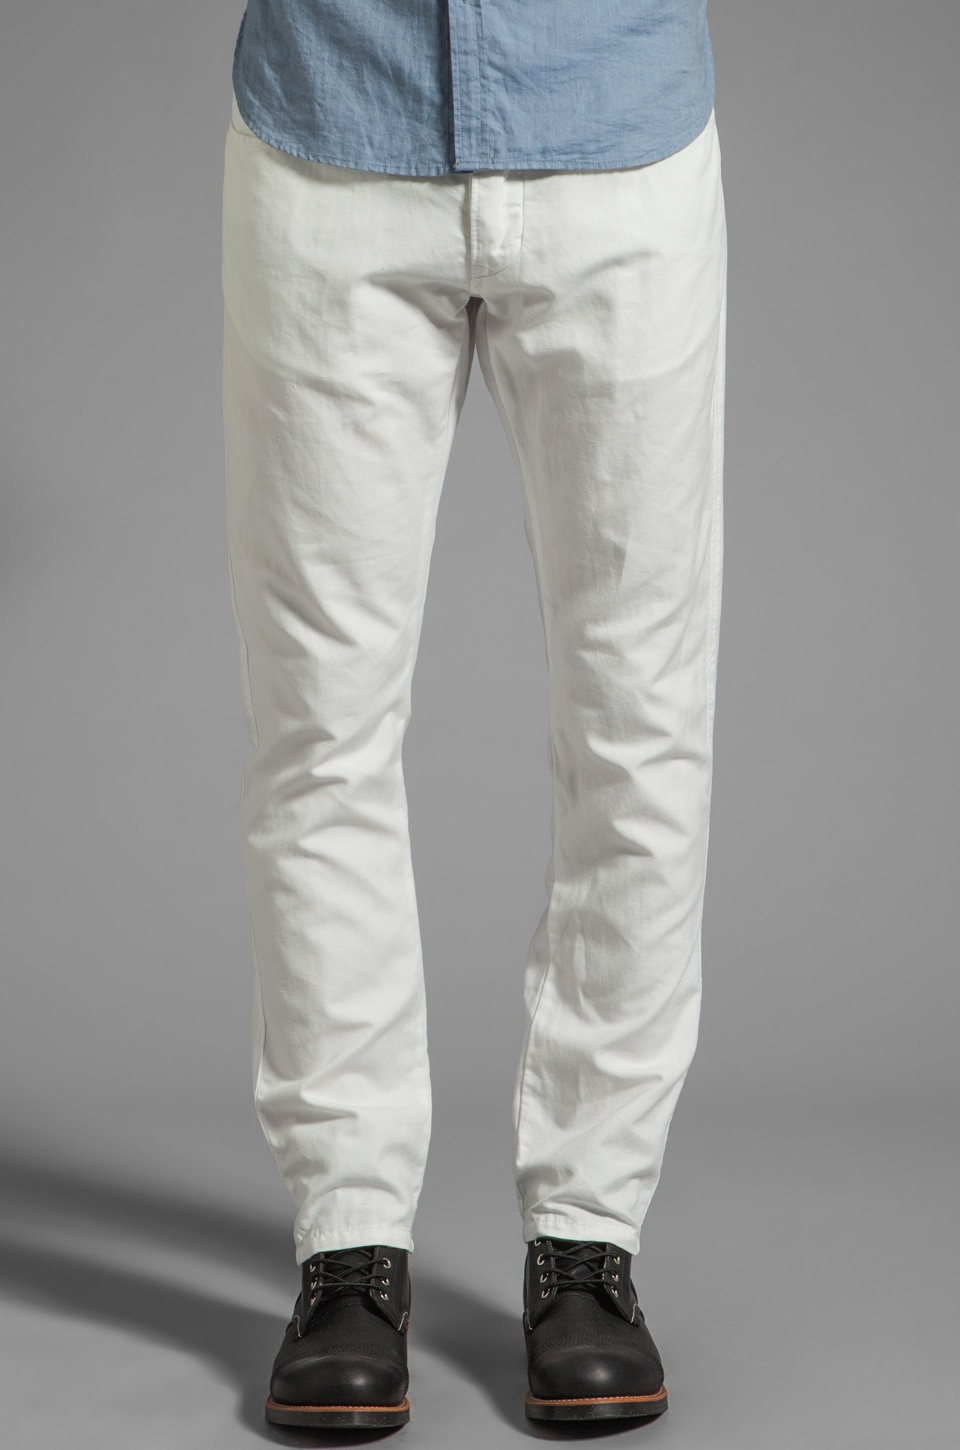 Howe Cali Kool Cotton Linen Pants in White Cotton